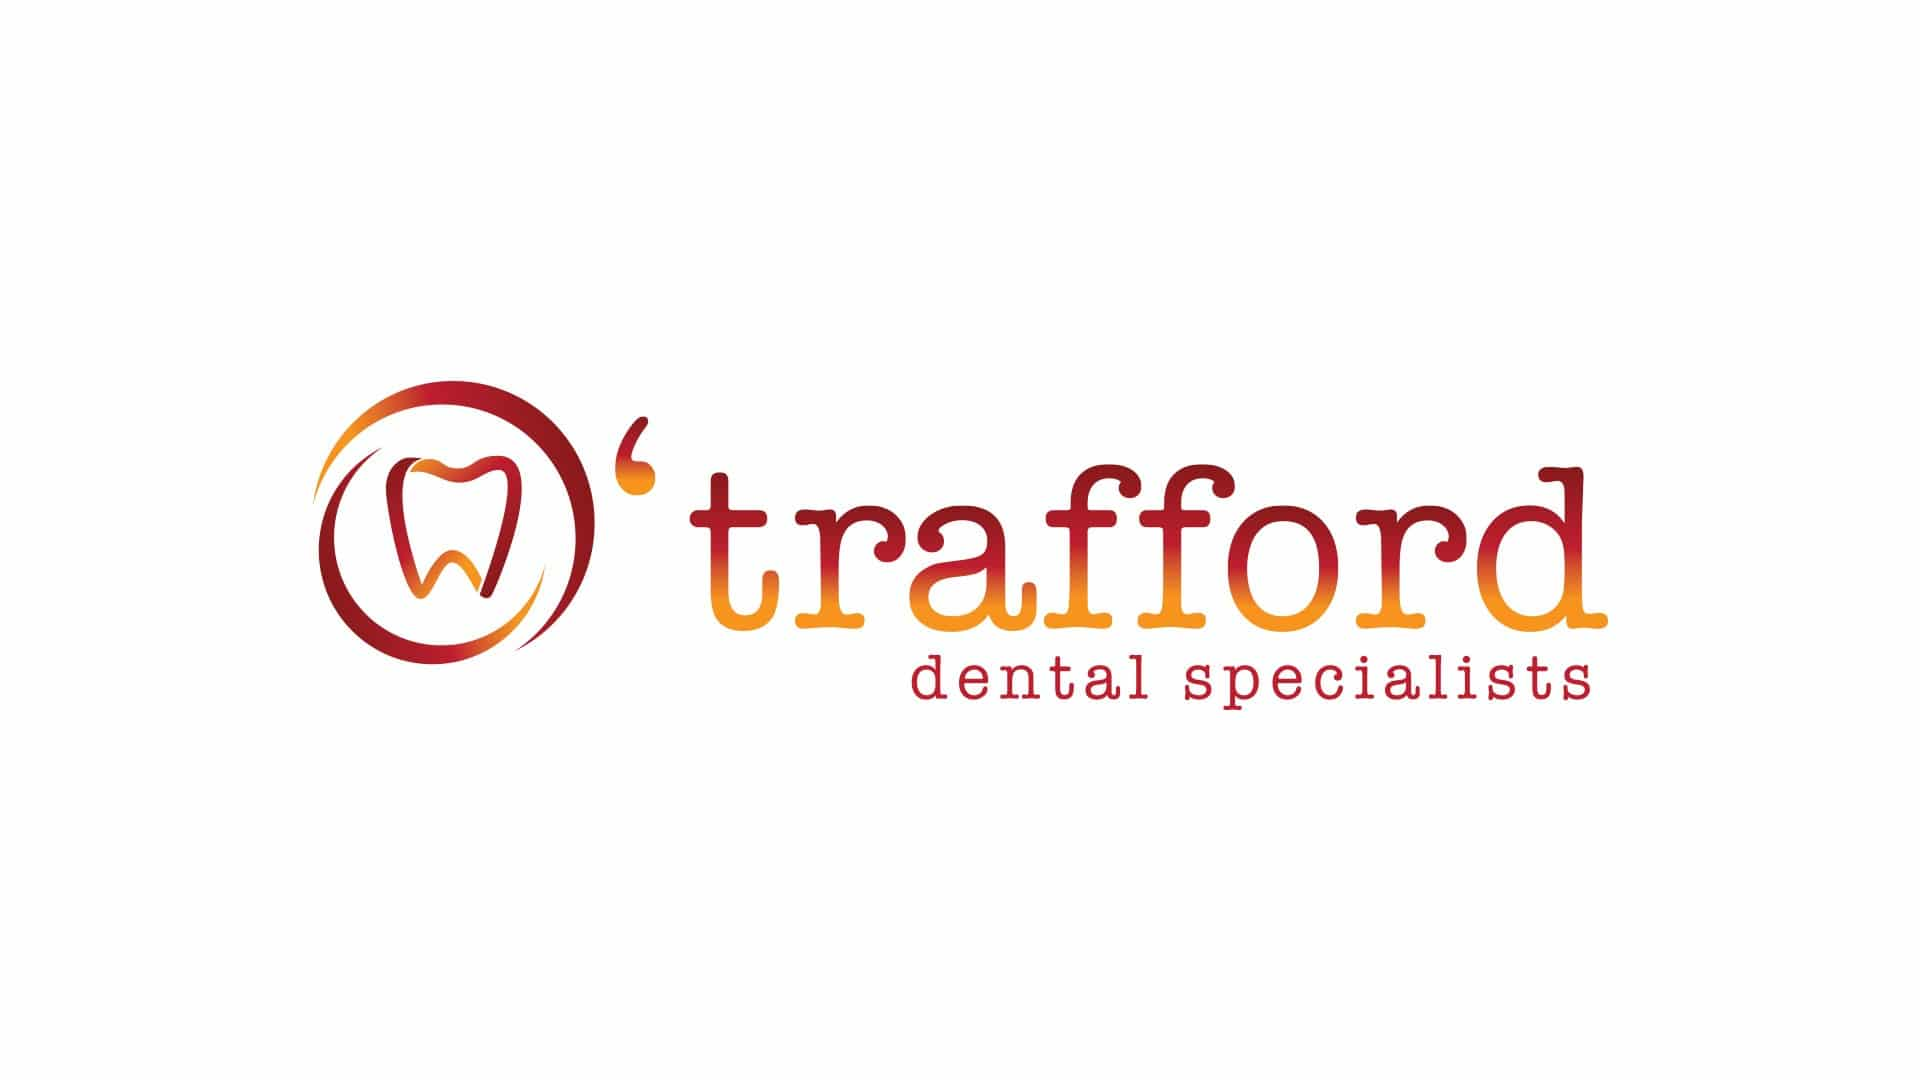 O'Trafford Dental Specialists